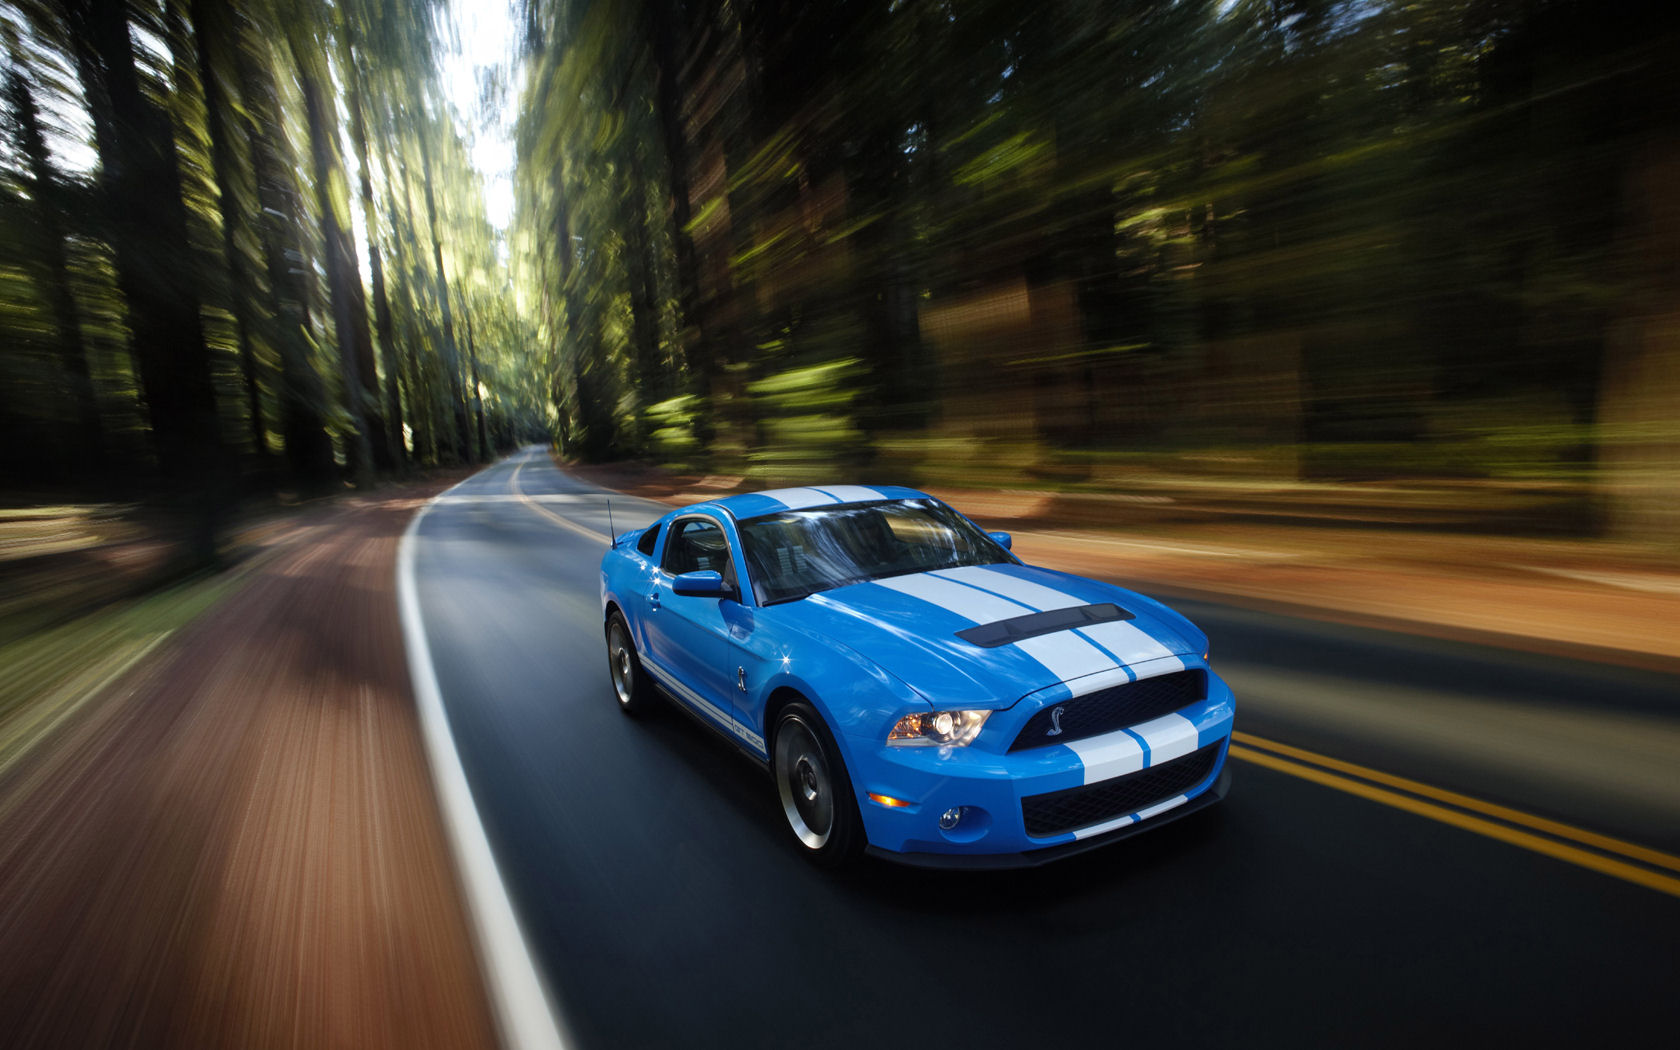 Muscle Cars Burnout Wallpapers Ford Mustang Shelby Gt500 Convertible Free Widescreen